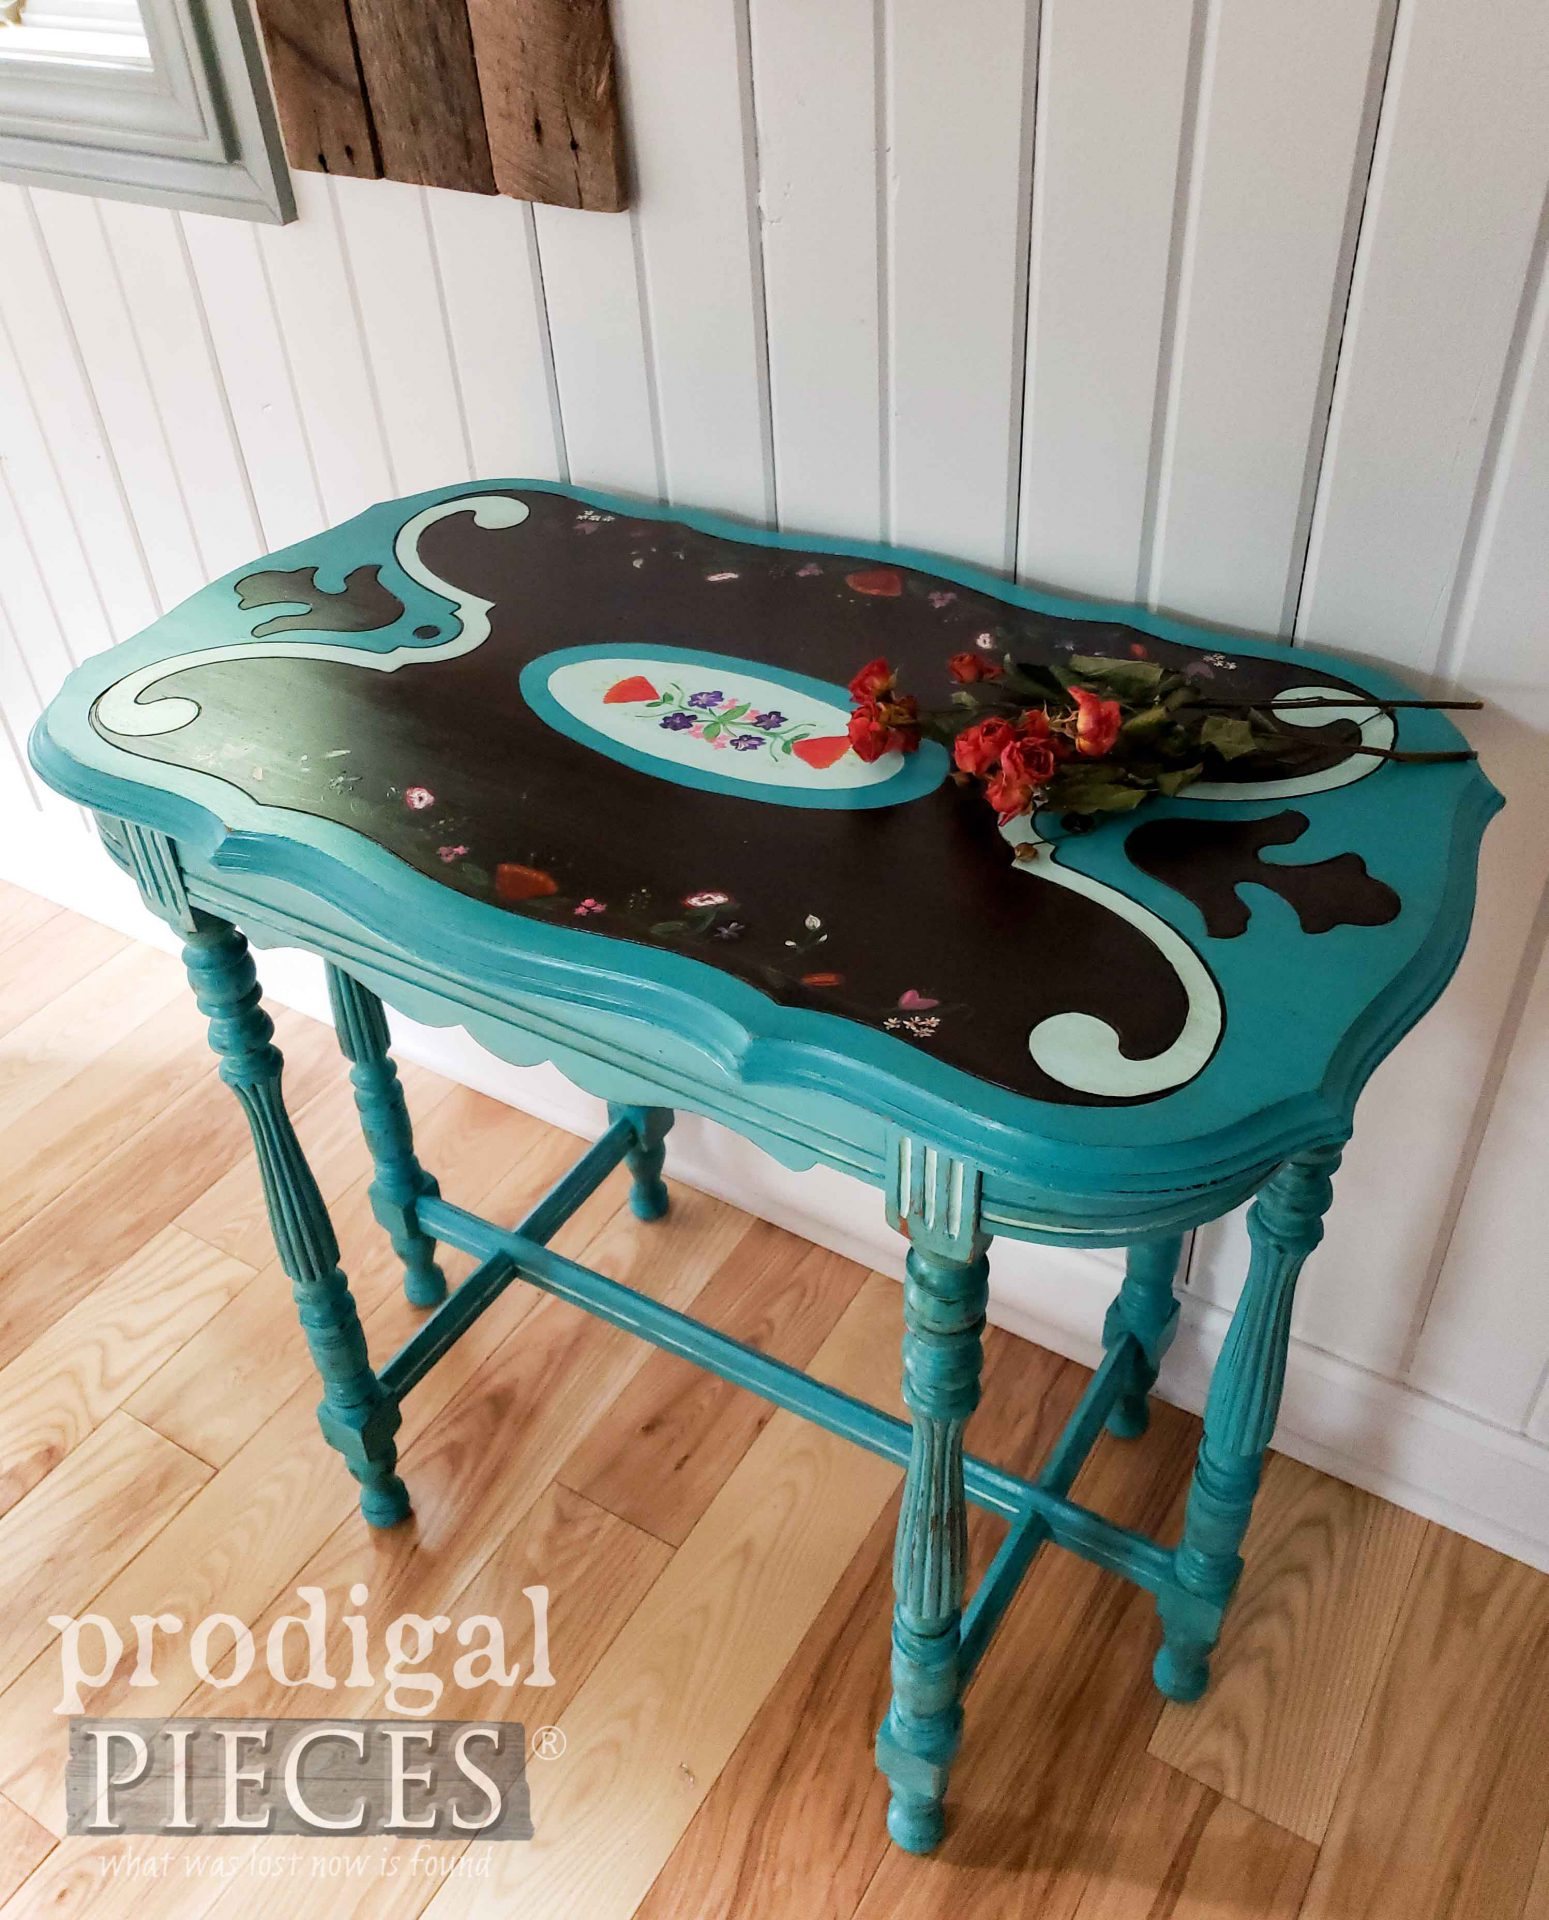 Beautiful Hand-Painted Antique Table Created by Larissa of Prodigal Pieces | prodigalpieces.com #prodigalpieces #antique #furniture #home #homedecor